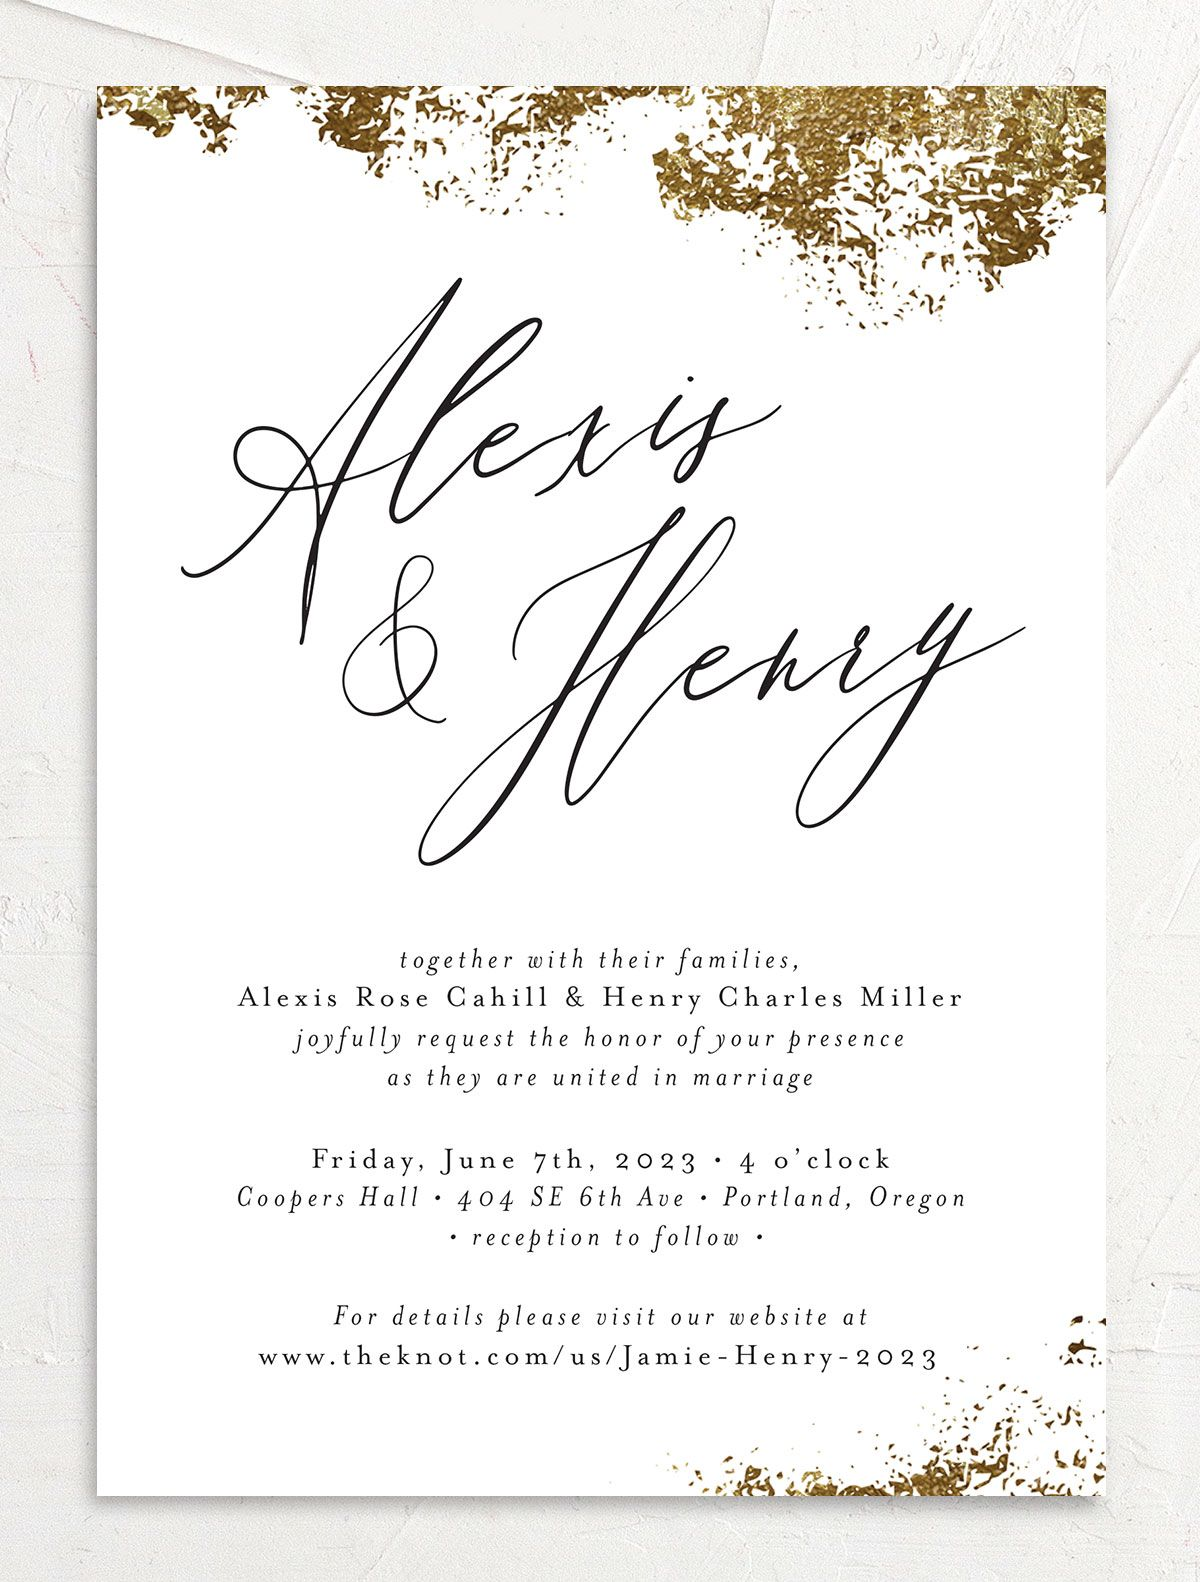 Elegant Organic wedding invitation front